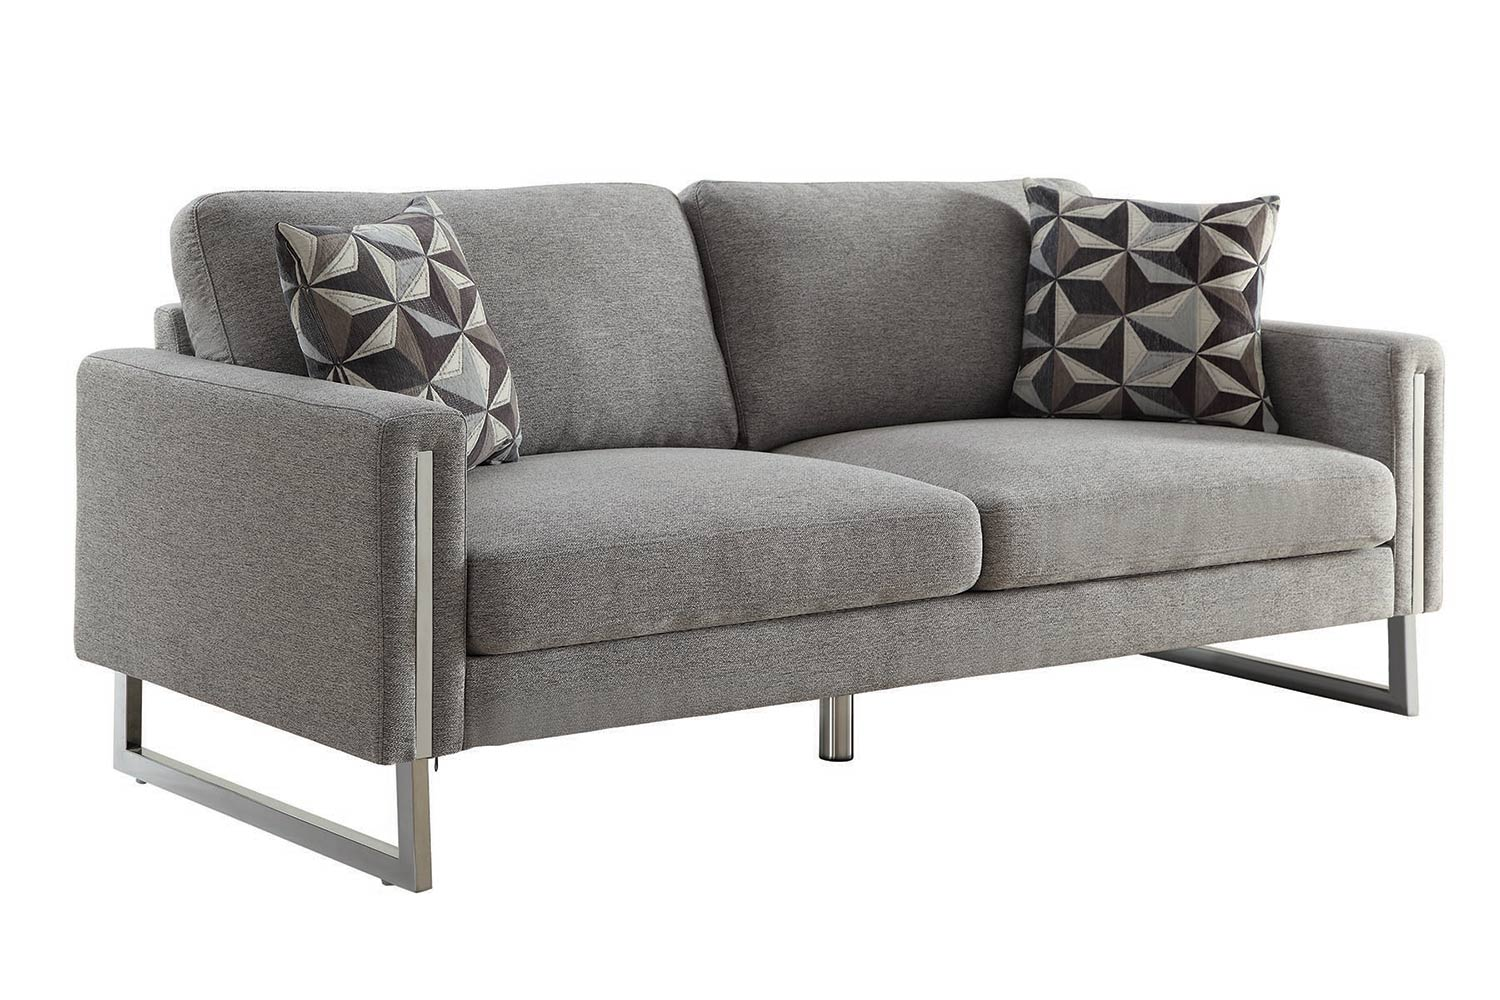 Coaster Stellan Sofa Set Grey 551241 Sofa Set At